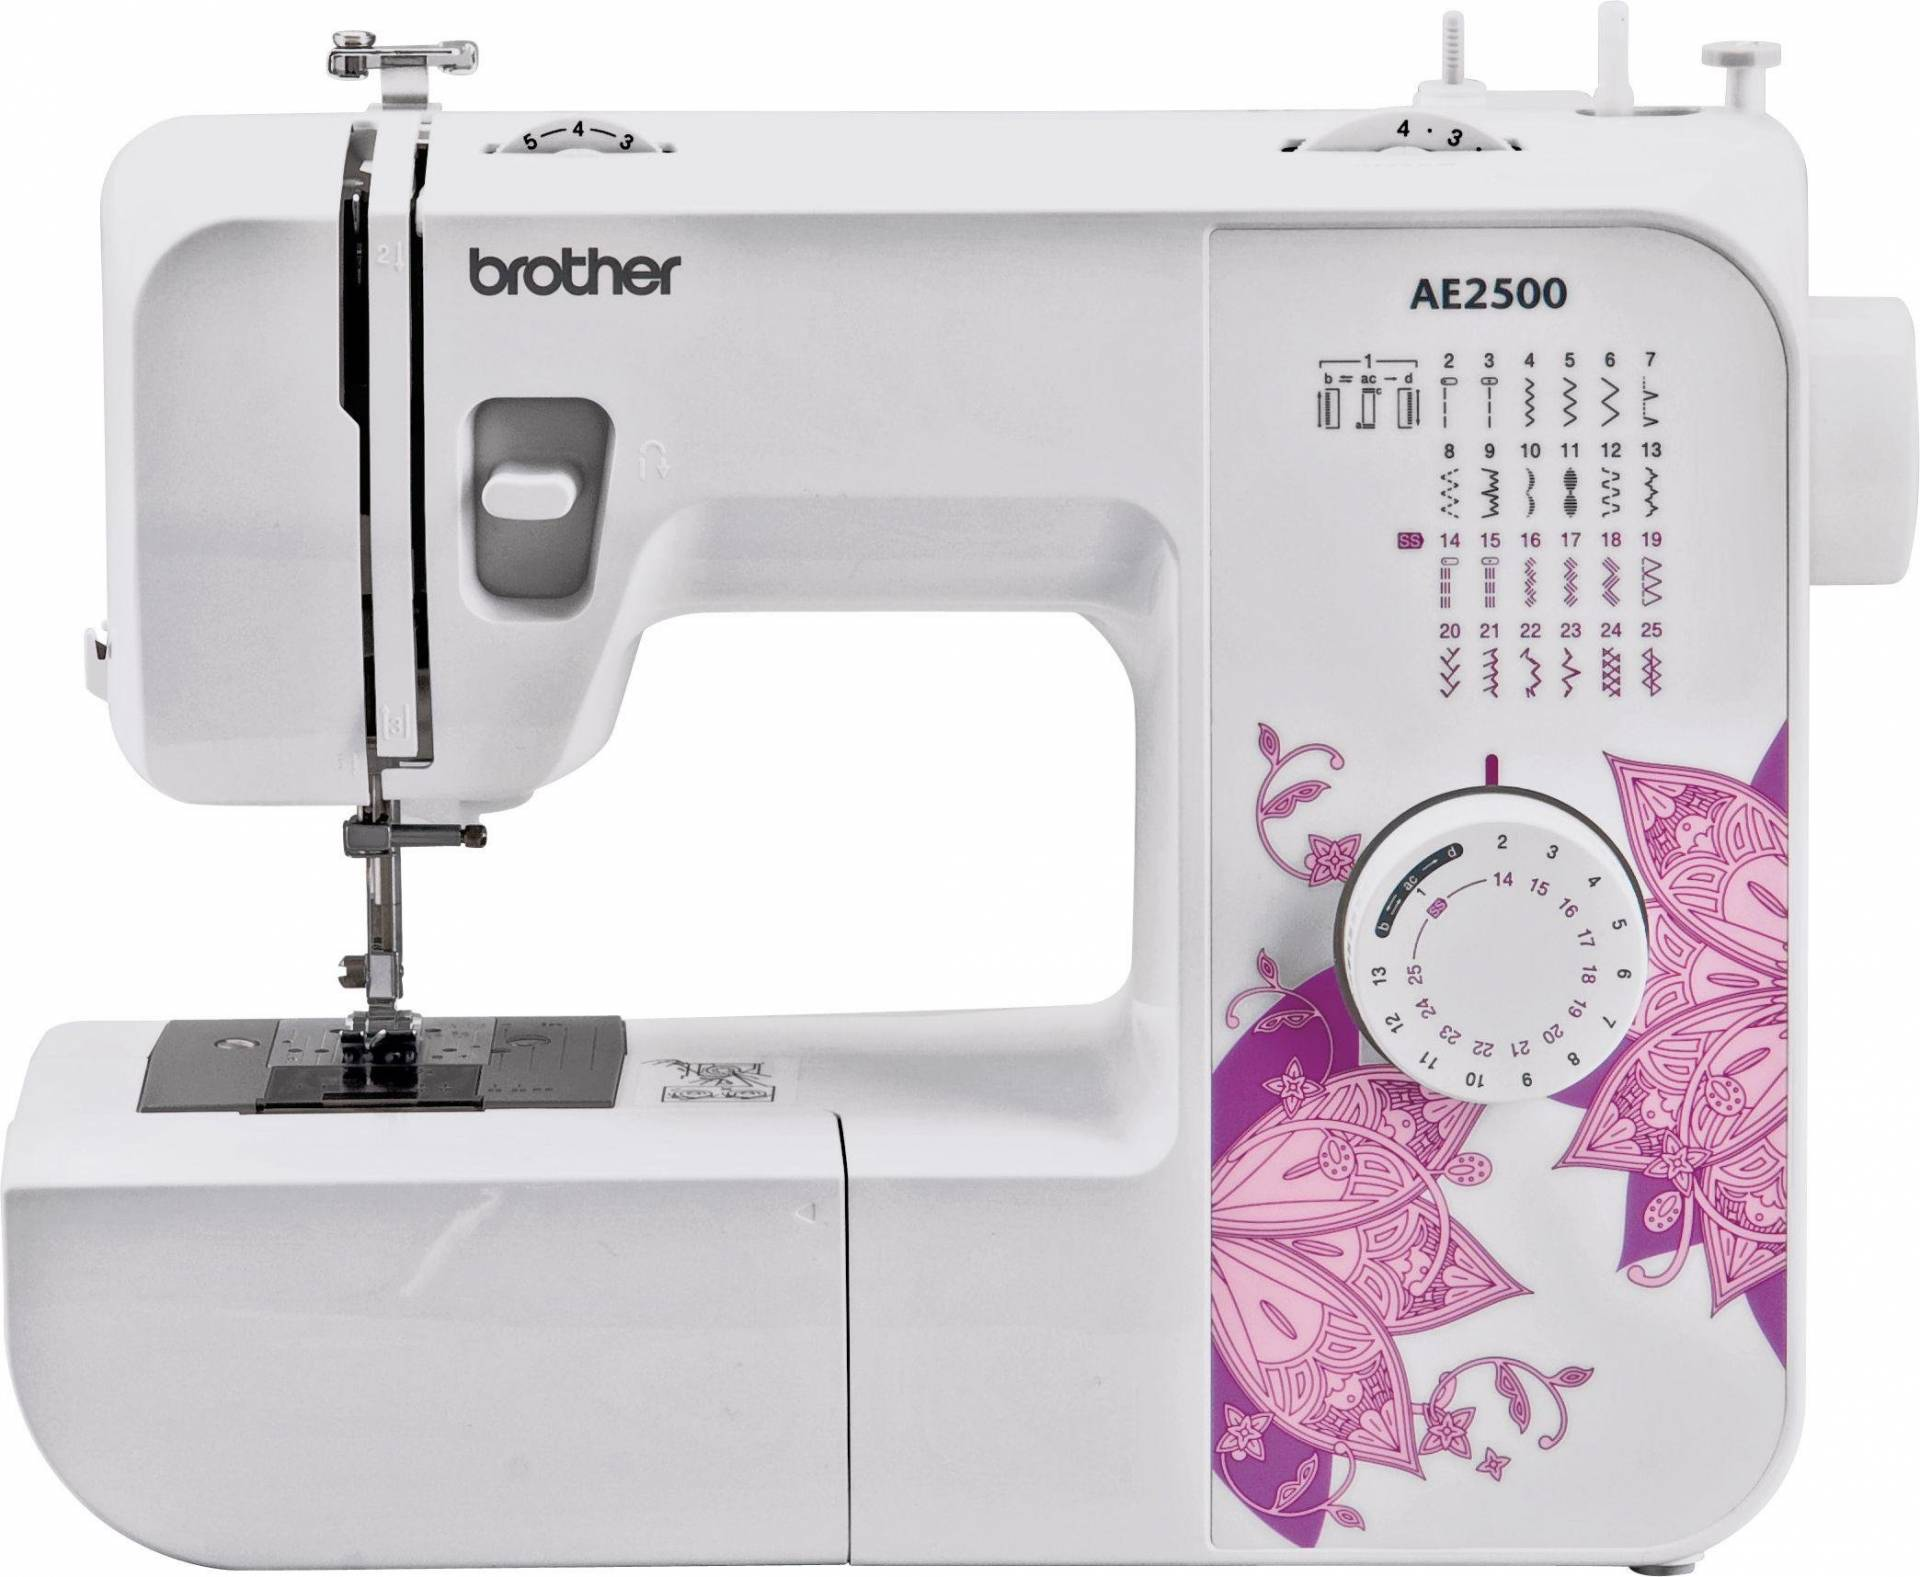 Brother - AE2500 Stitch Sewing Machine - White from Brother